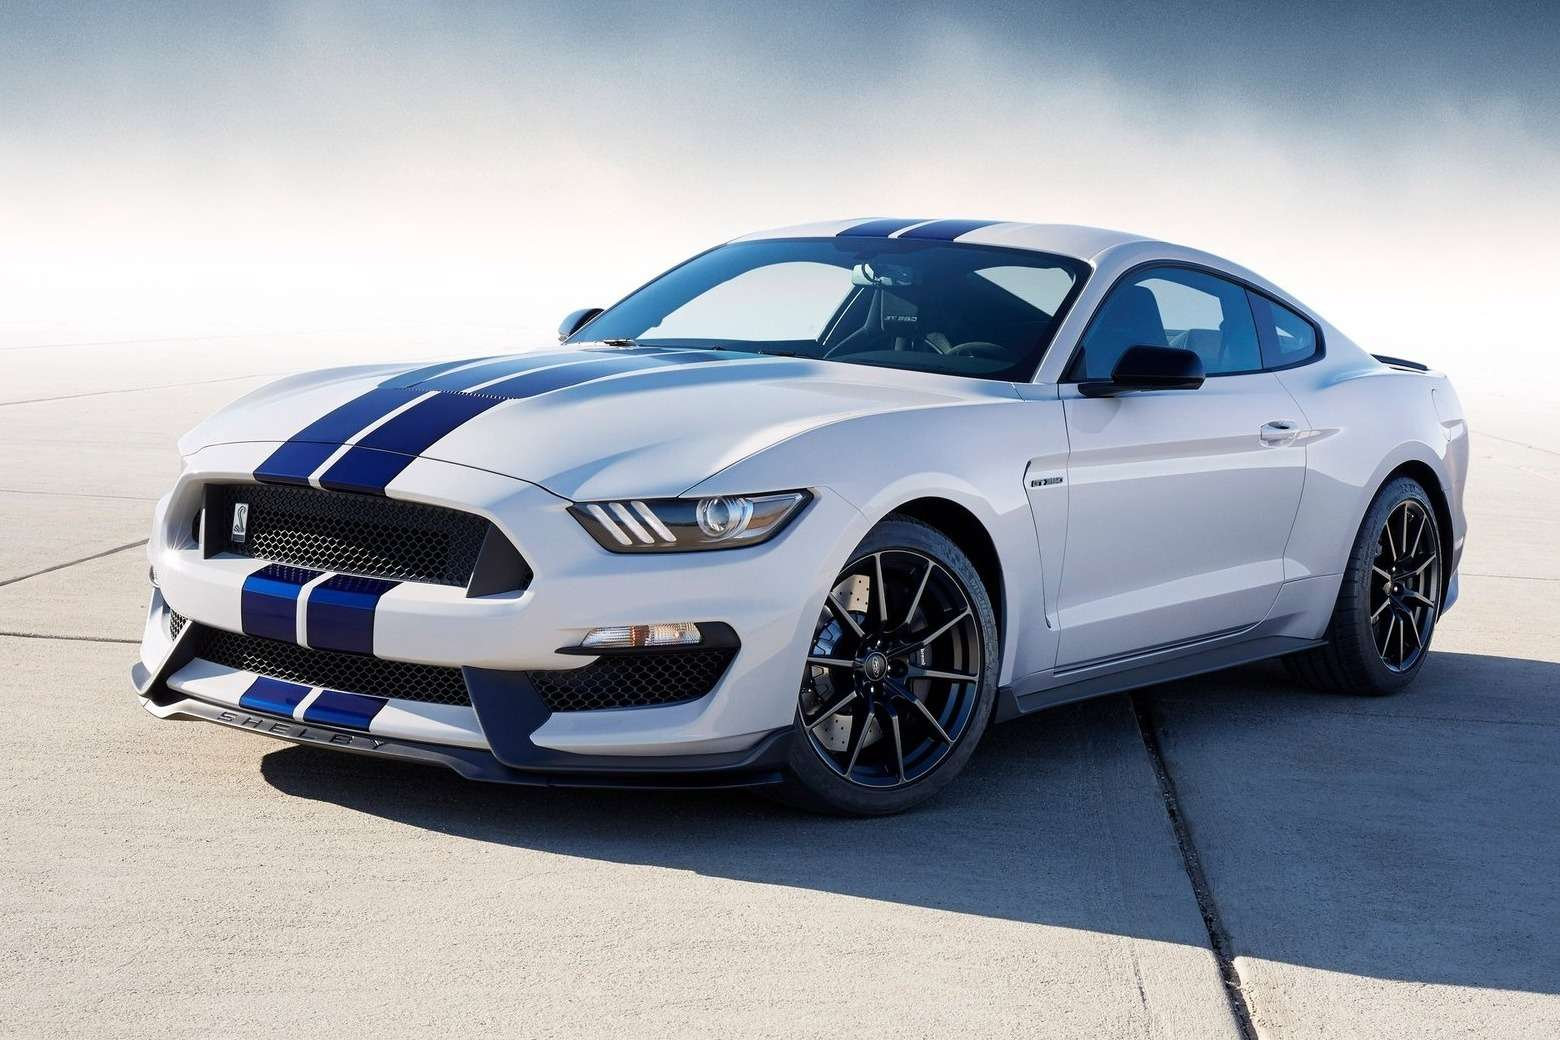 Ford-Mustang_Shelby_GT350_2016_1600x1200_wallpaper_01